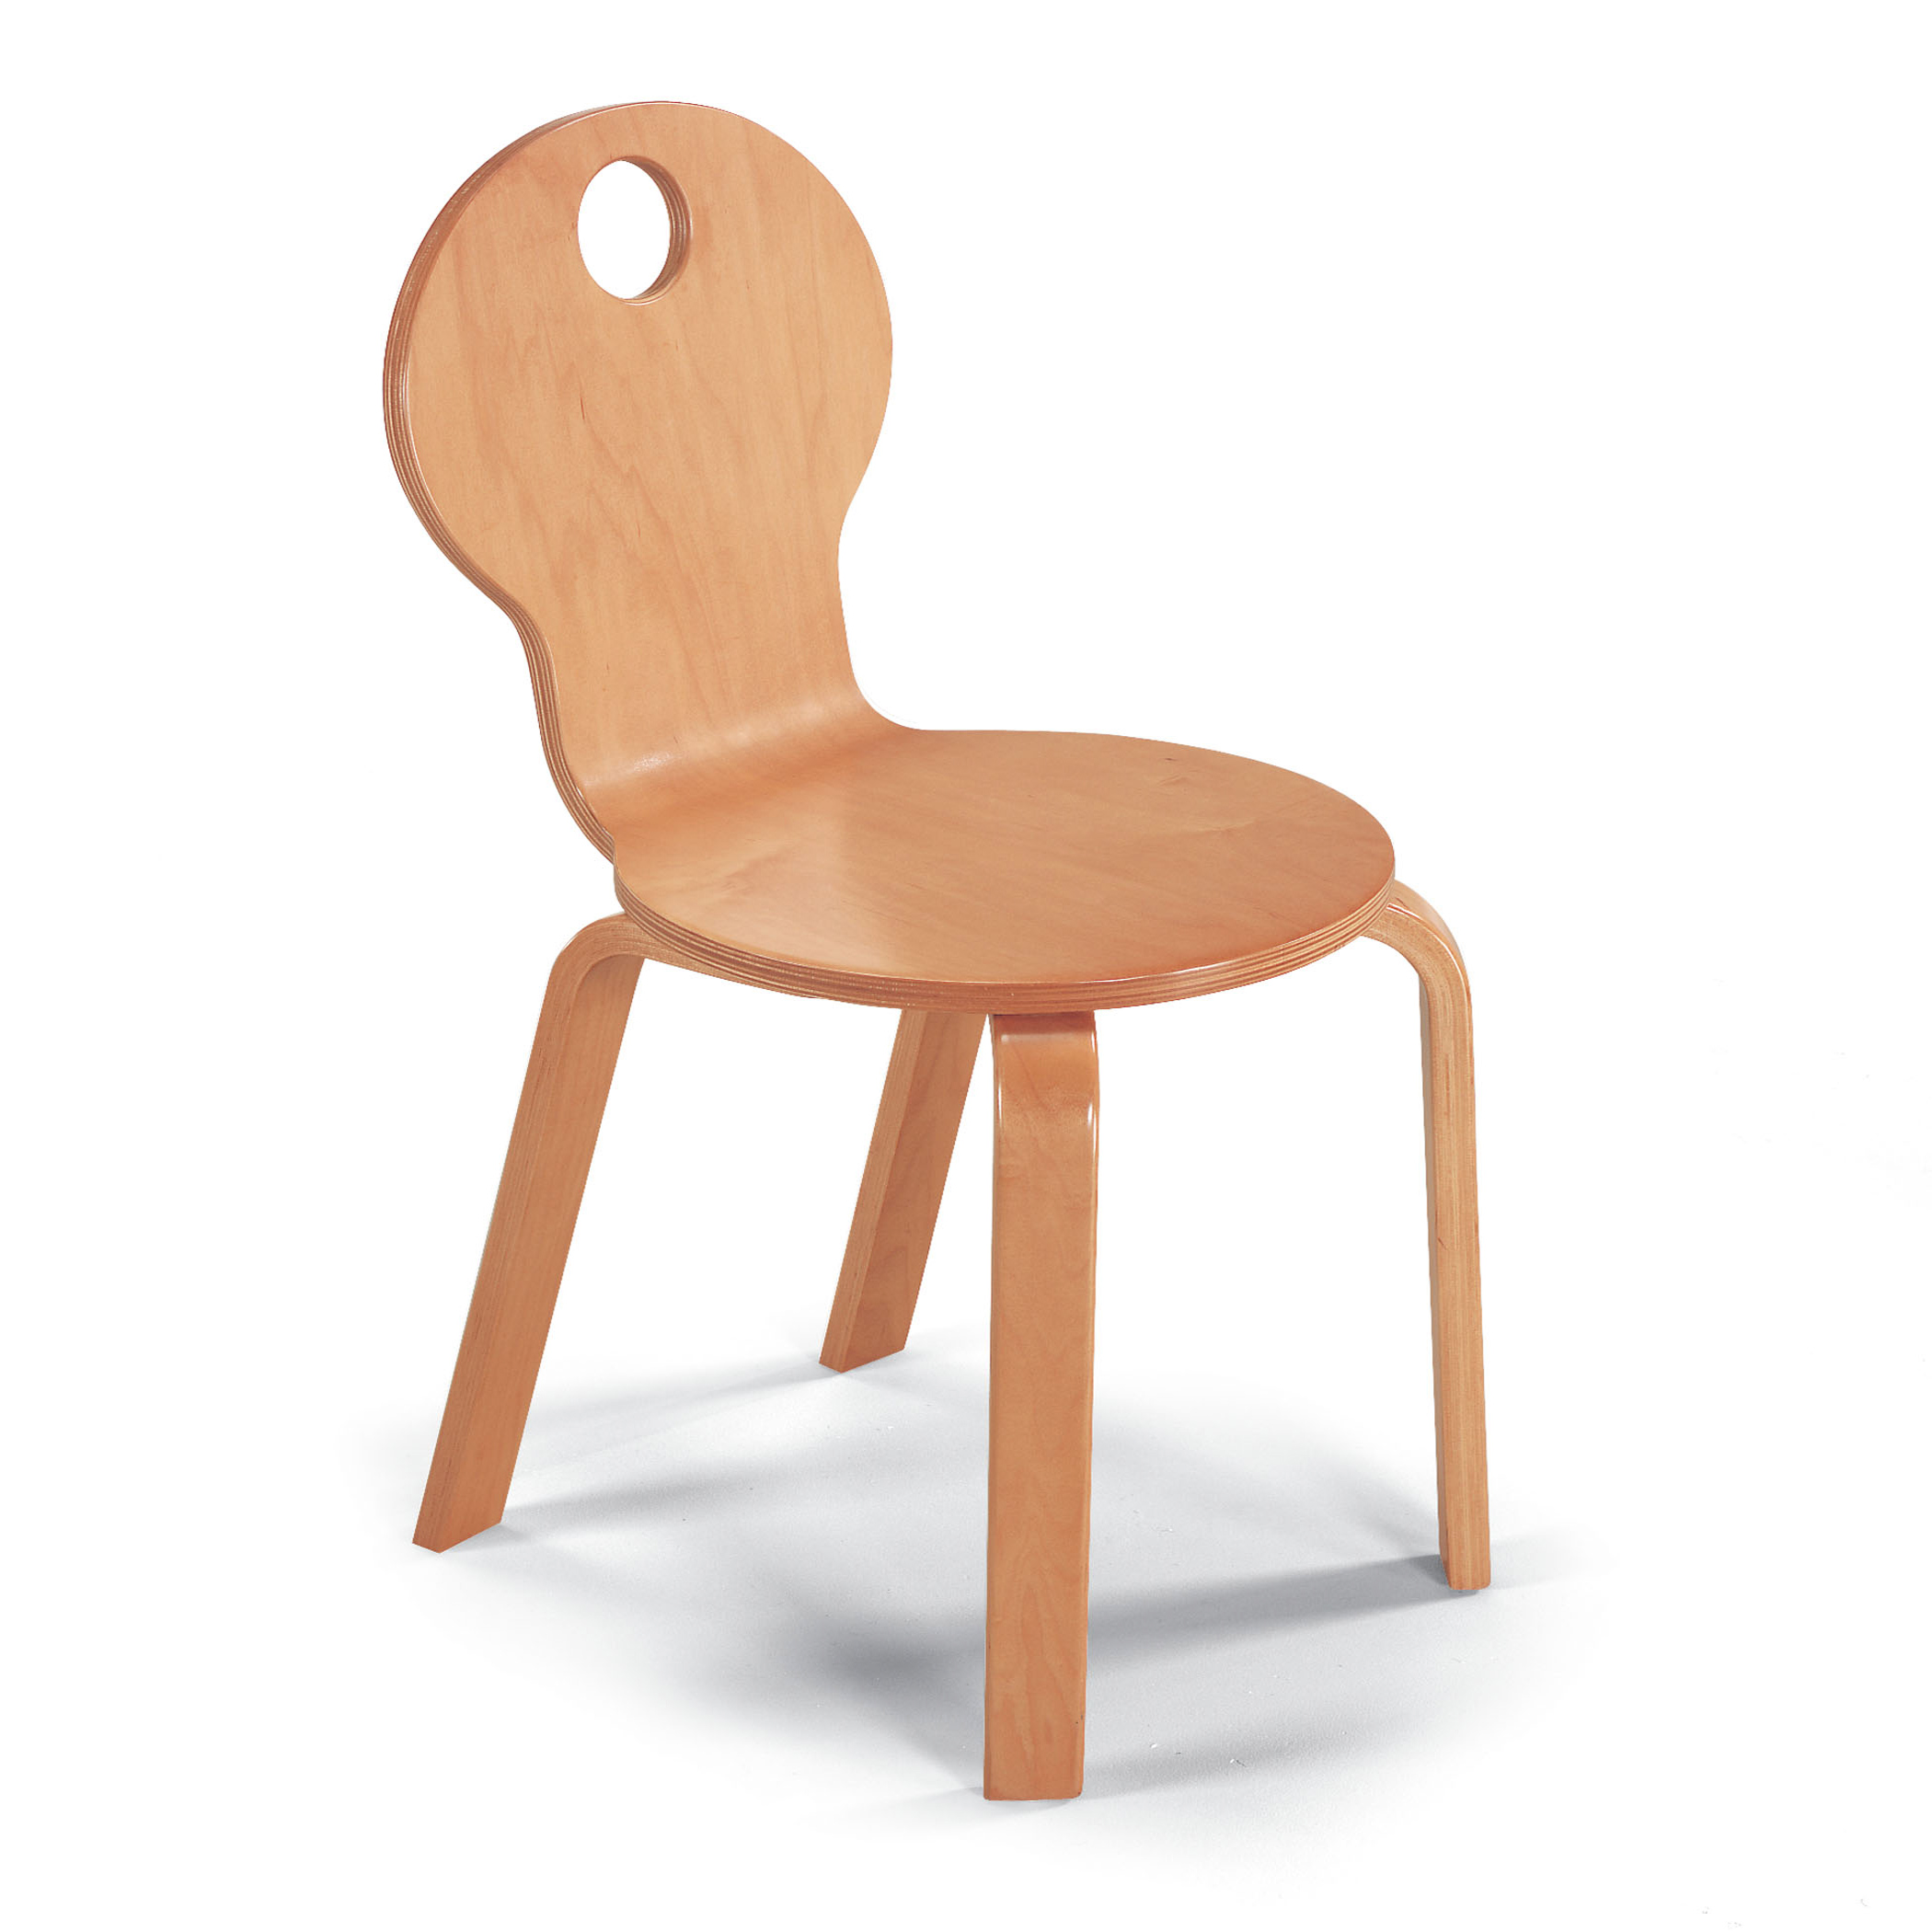 Kids Wooden Chair Children 39s Bent Wood Chair